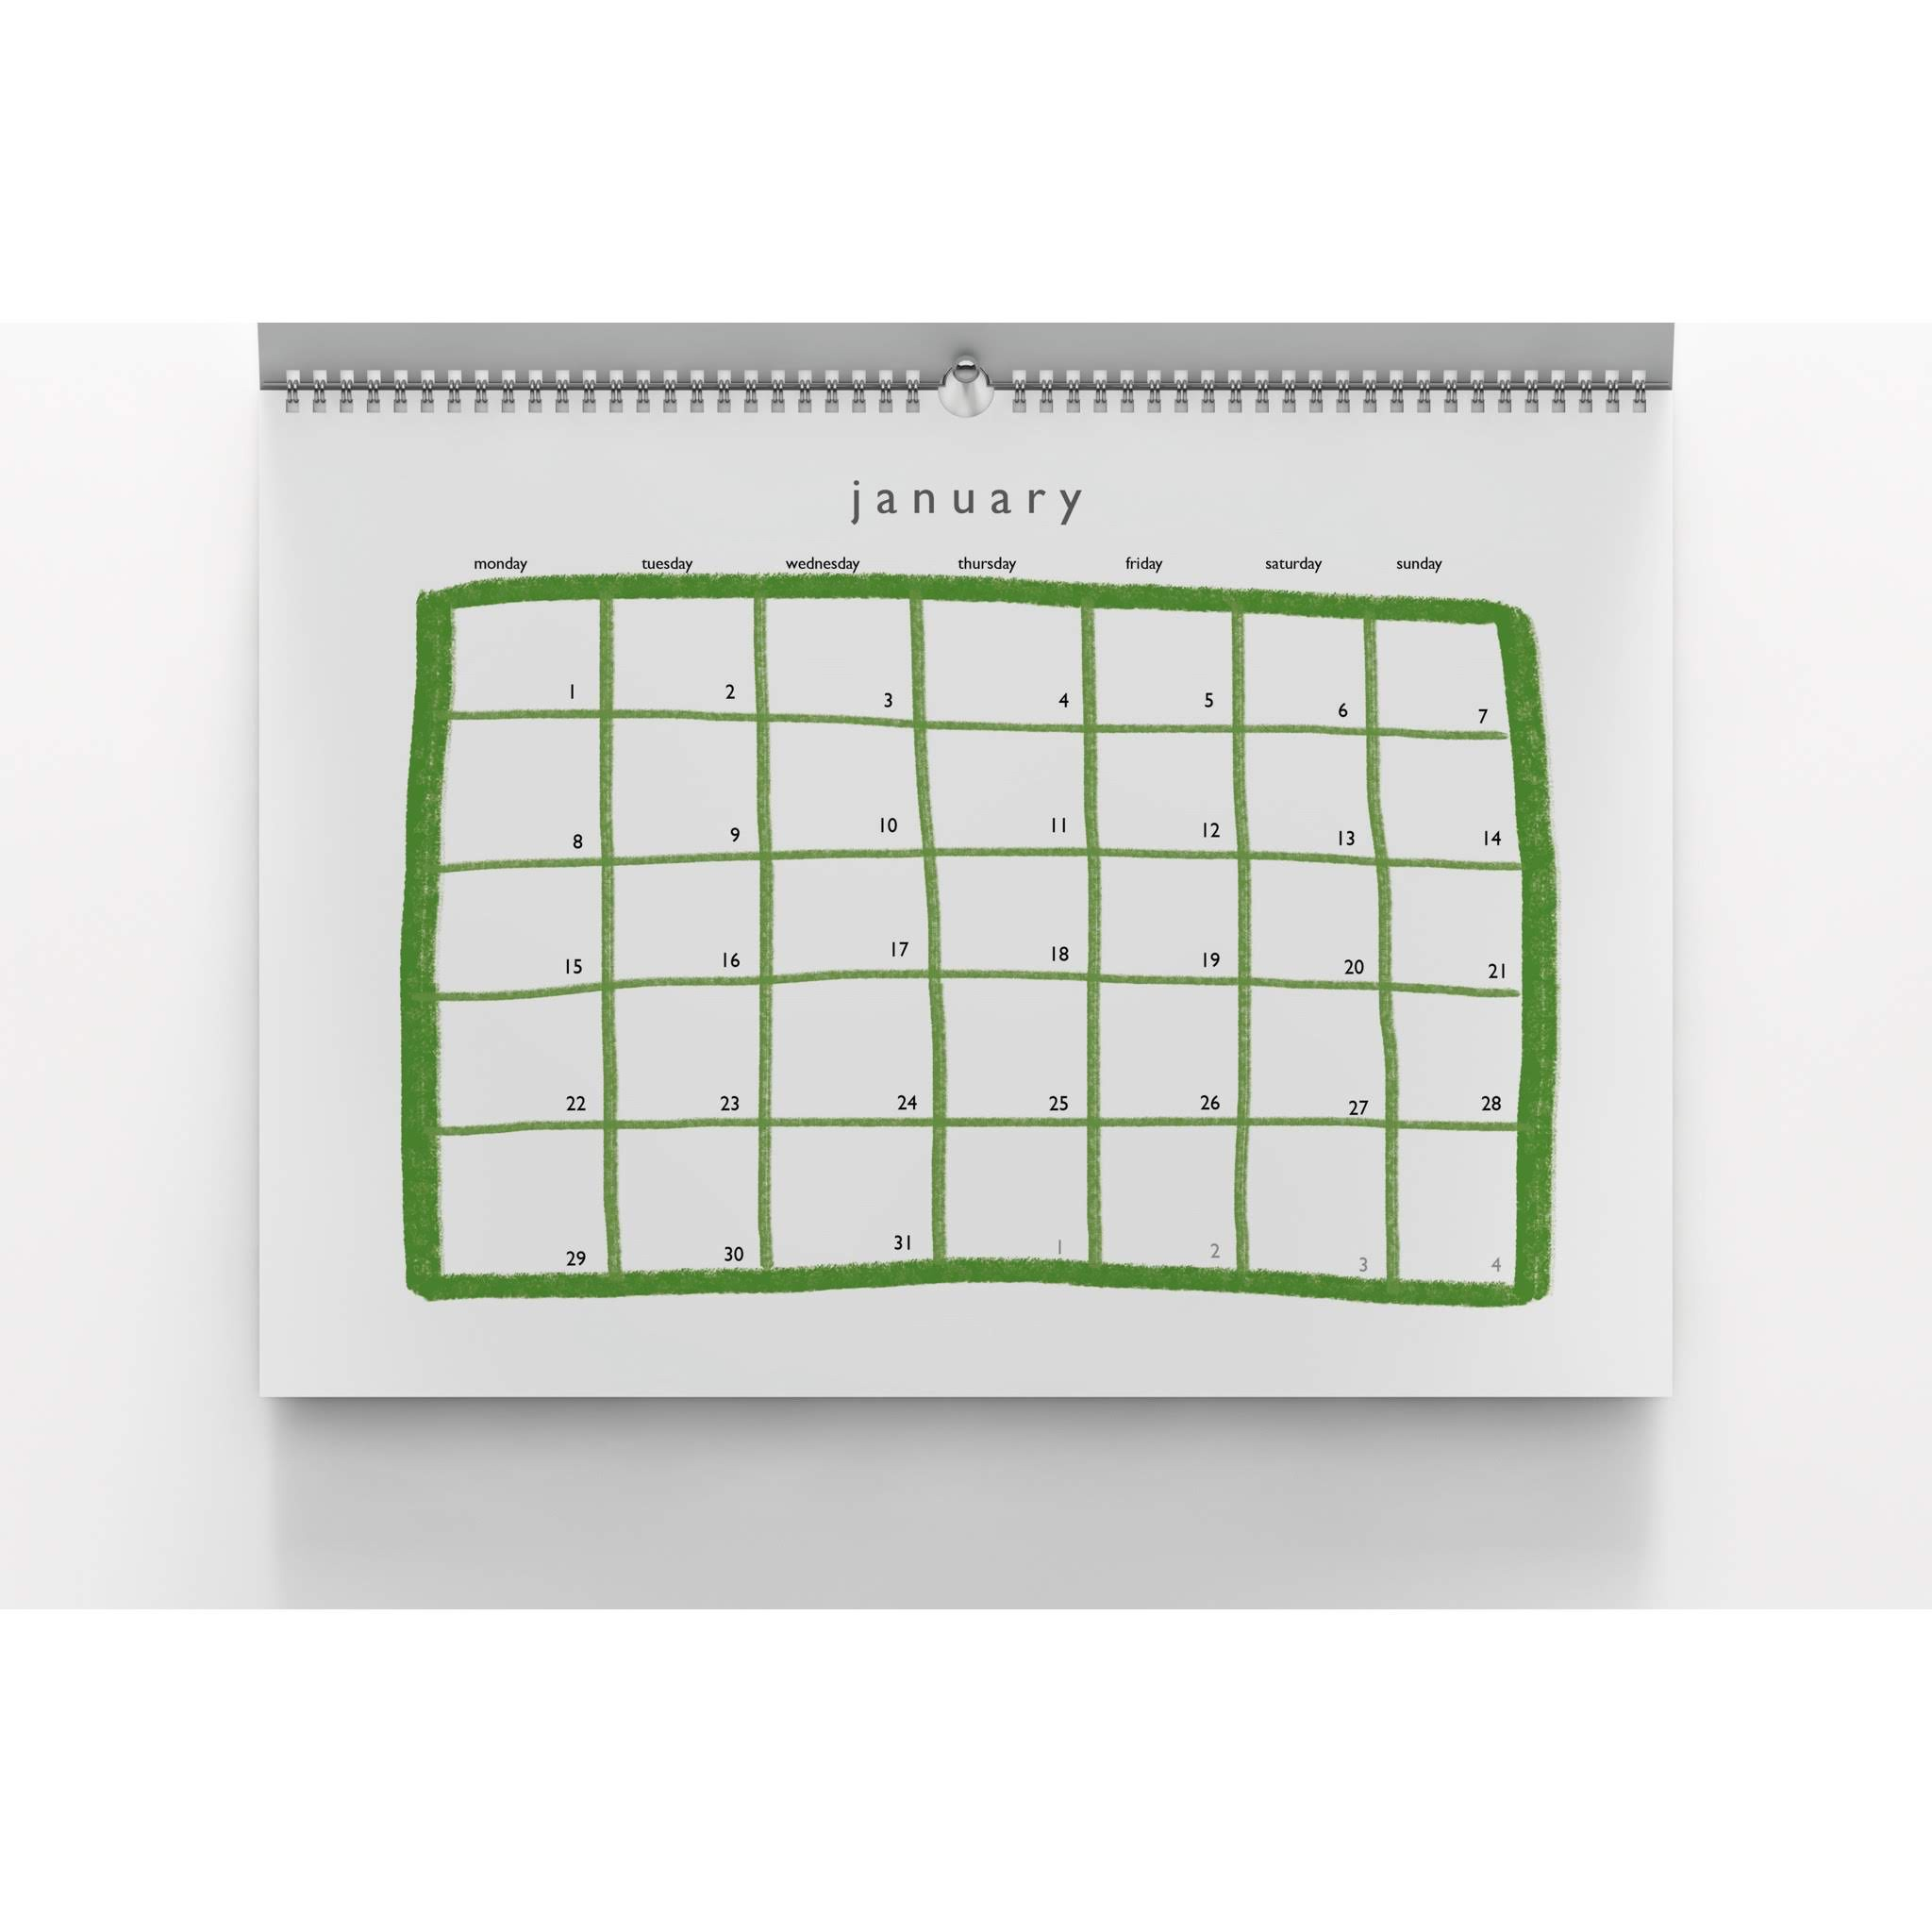 Katie draws - katie chappell illustrated calendar